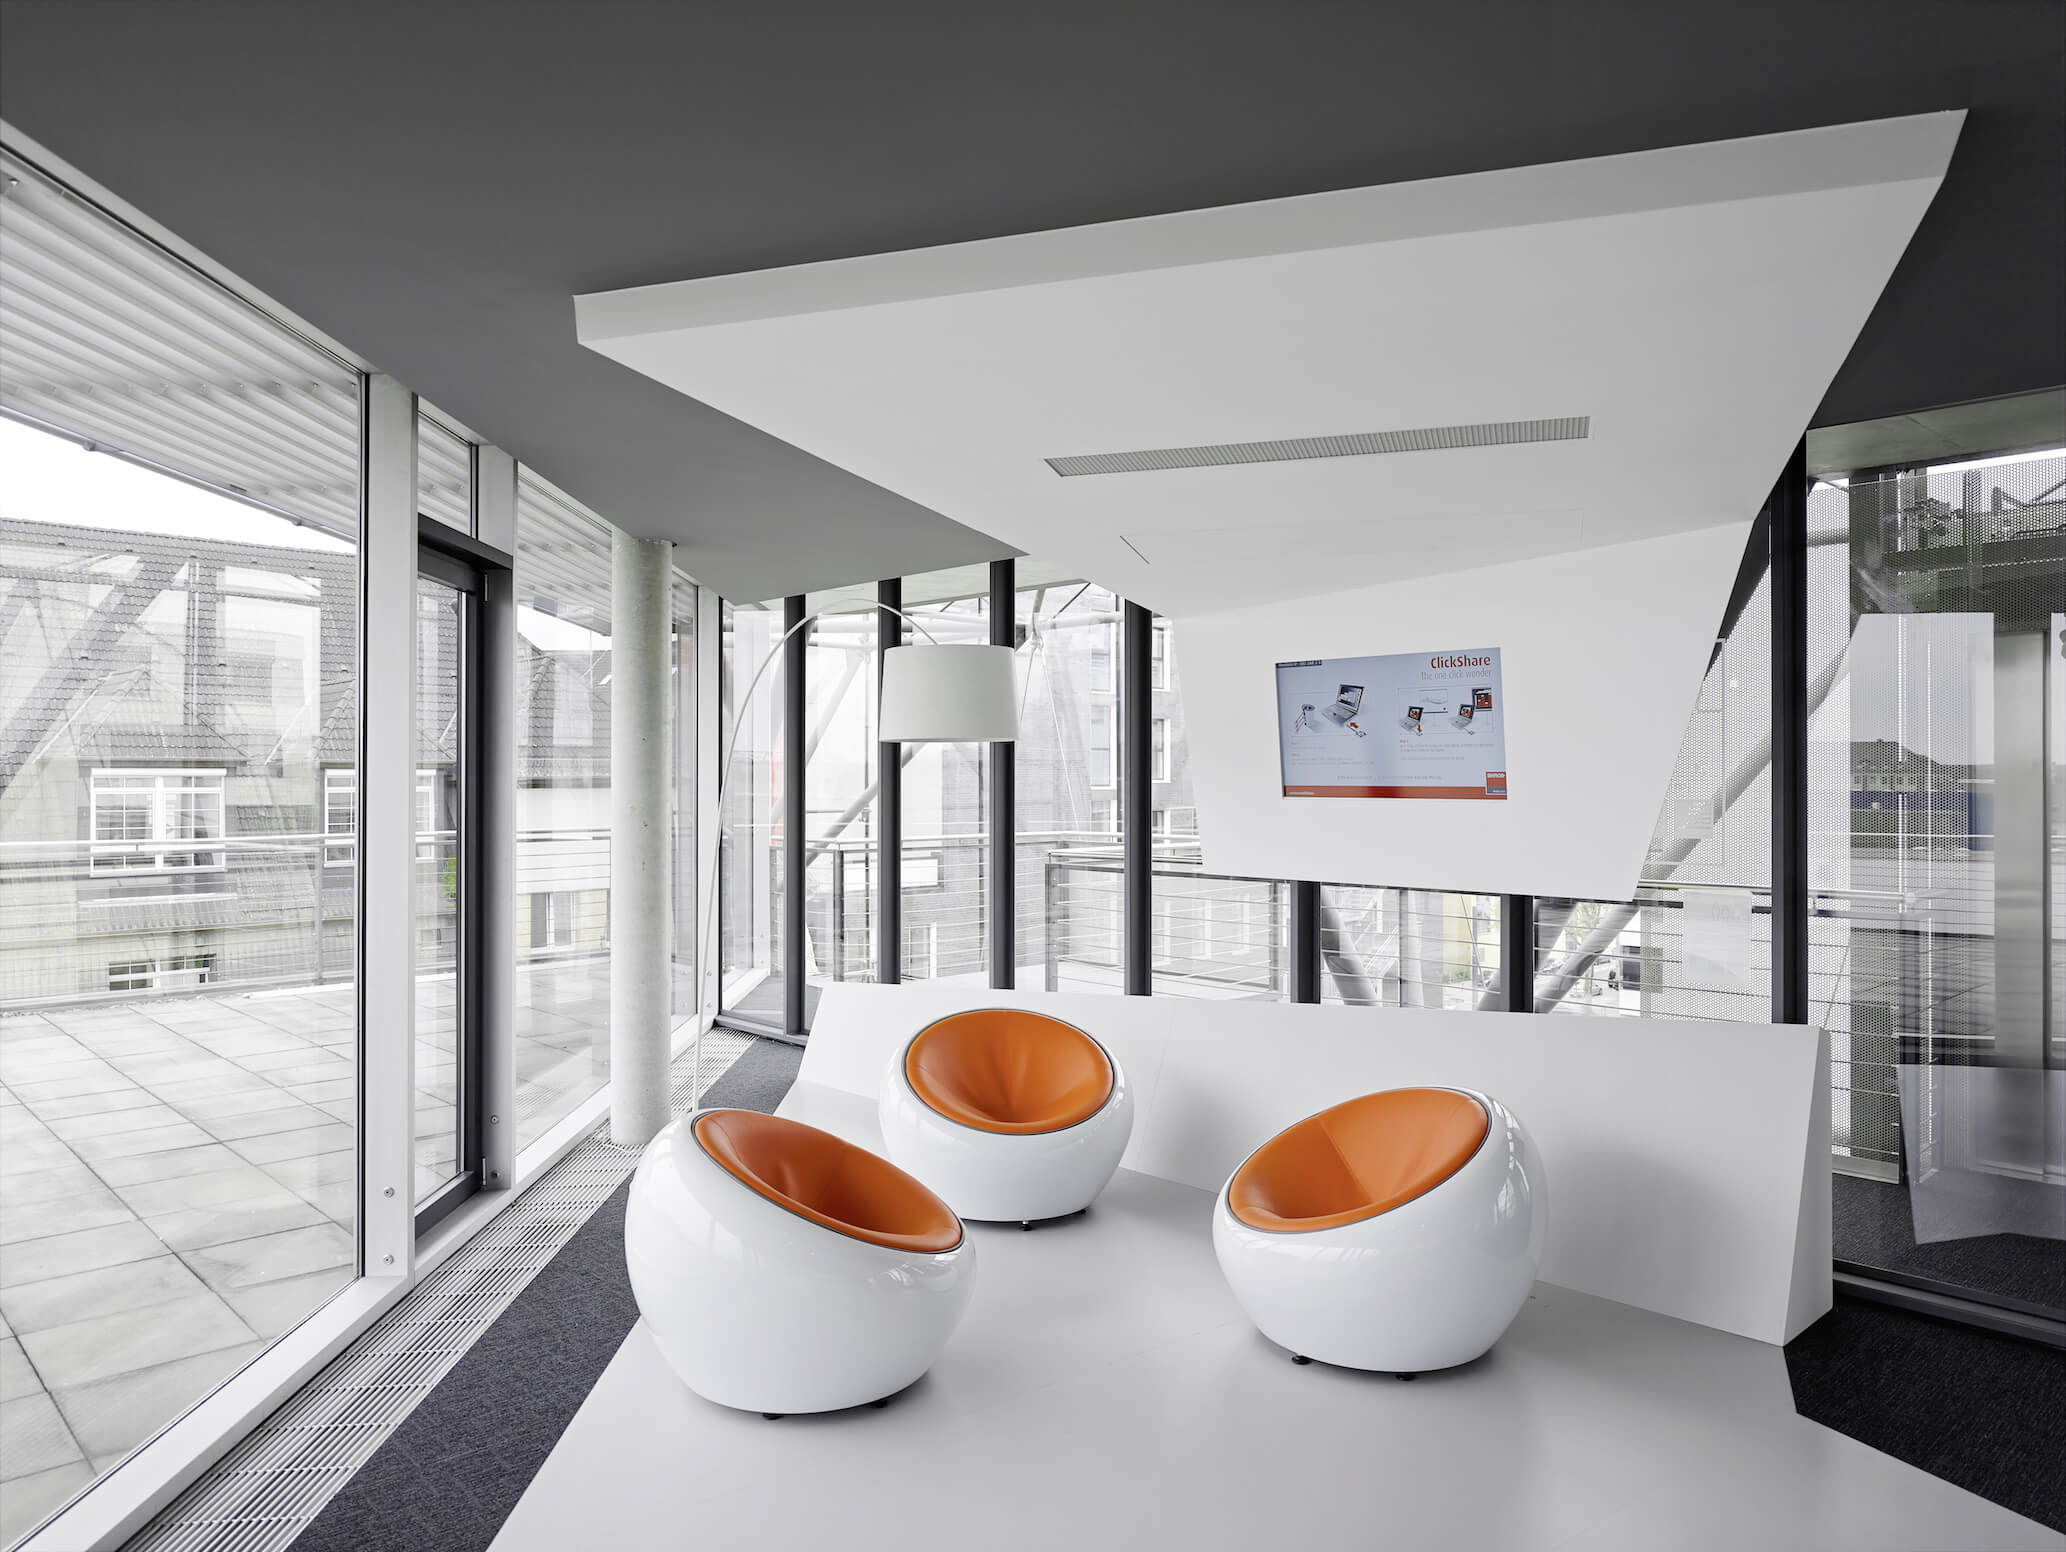 """Here we have a closer view of the trio of """"egg"""" chairs with orange leather seating. Full height glass surrounds the space, lending natural light and an expansive, minimalist feeling."""